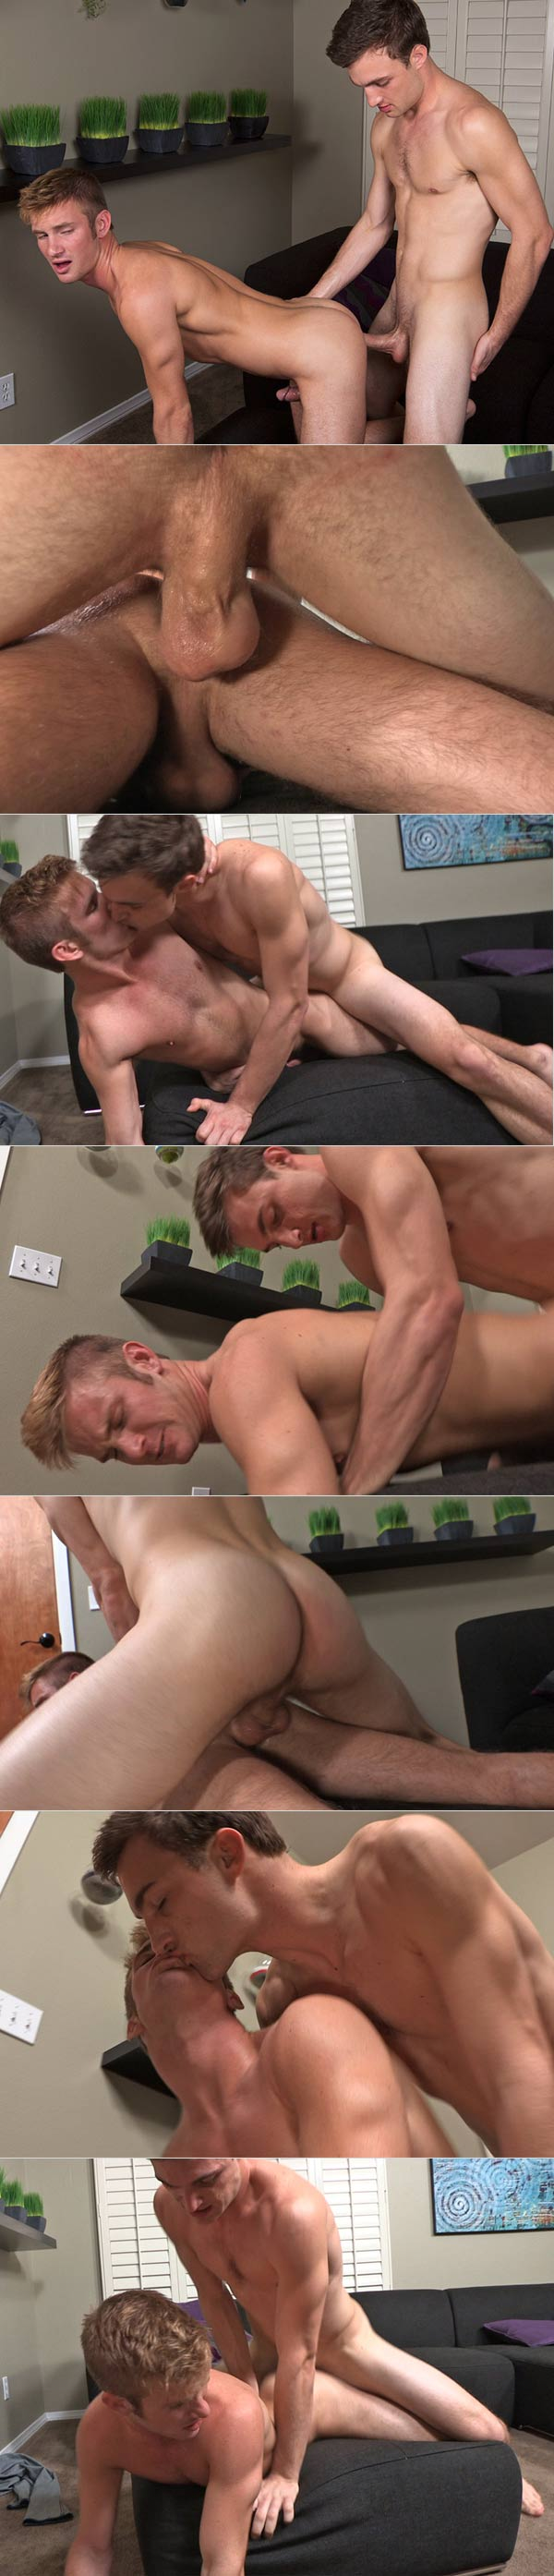 Rich & Miles (Bareback) at SeanCody